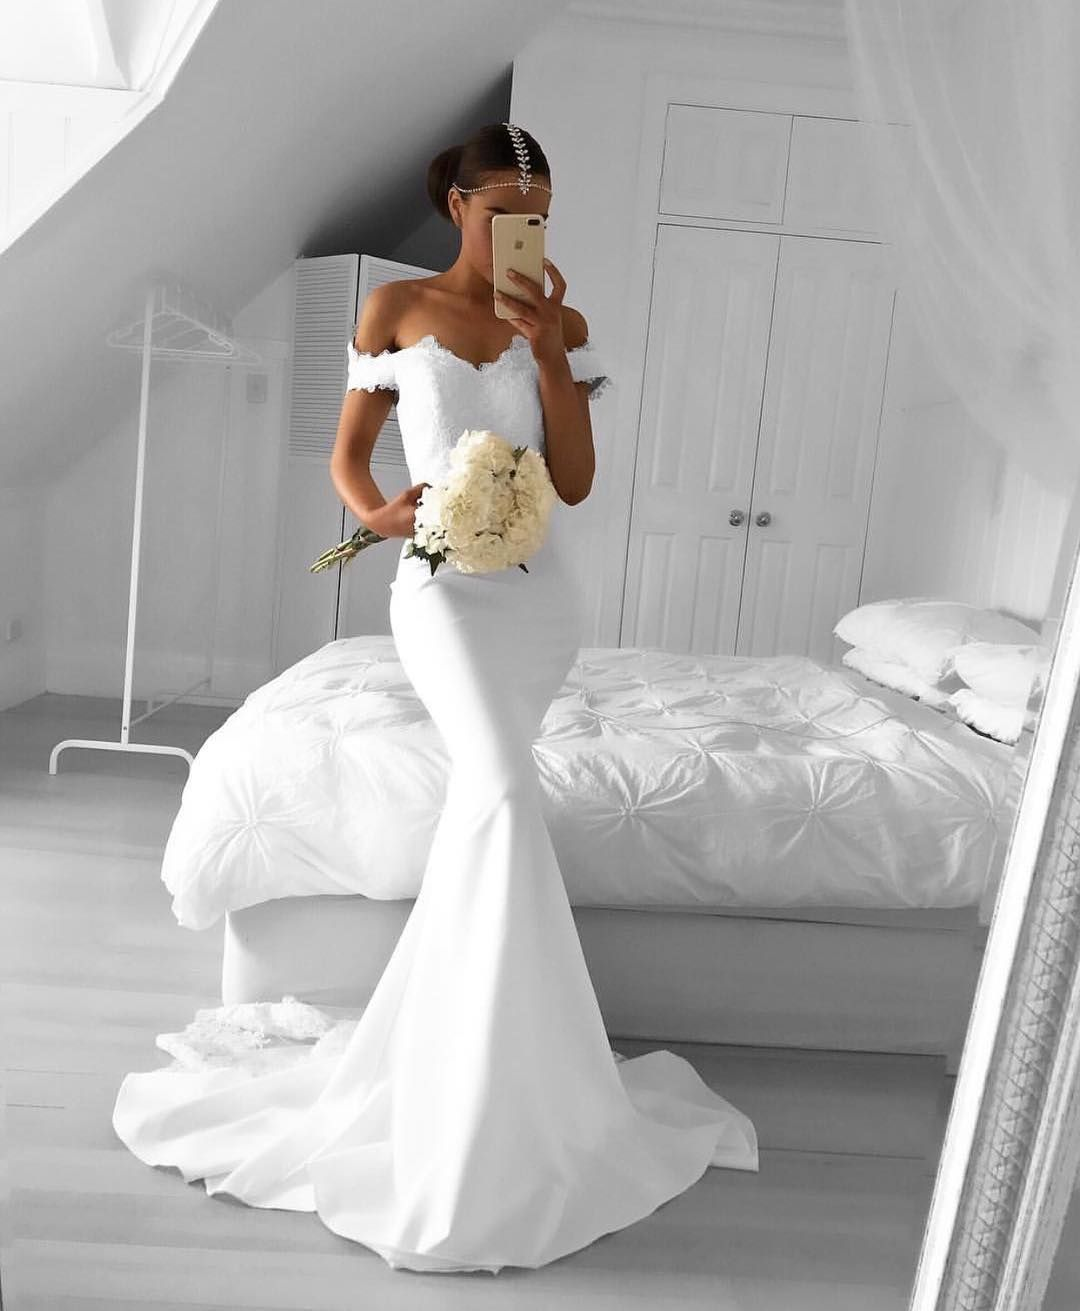 Stunner emspiliopoulos wearing our indyana gown in white wedding